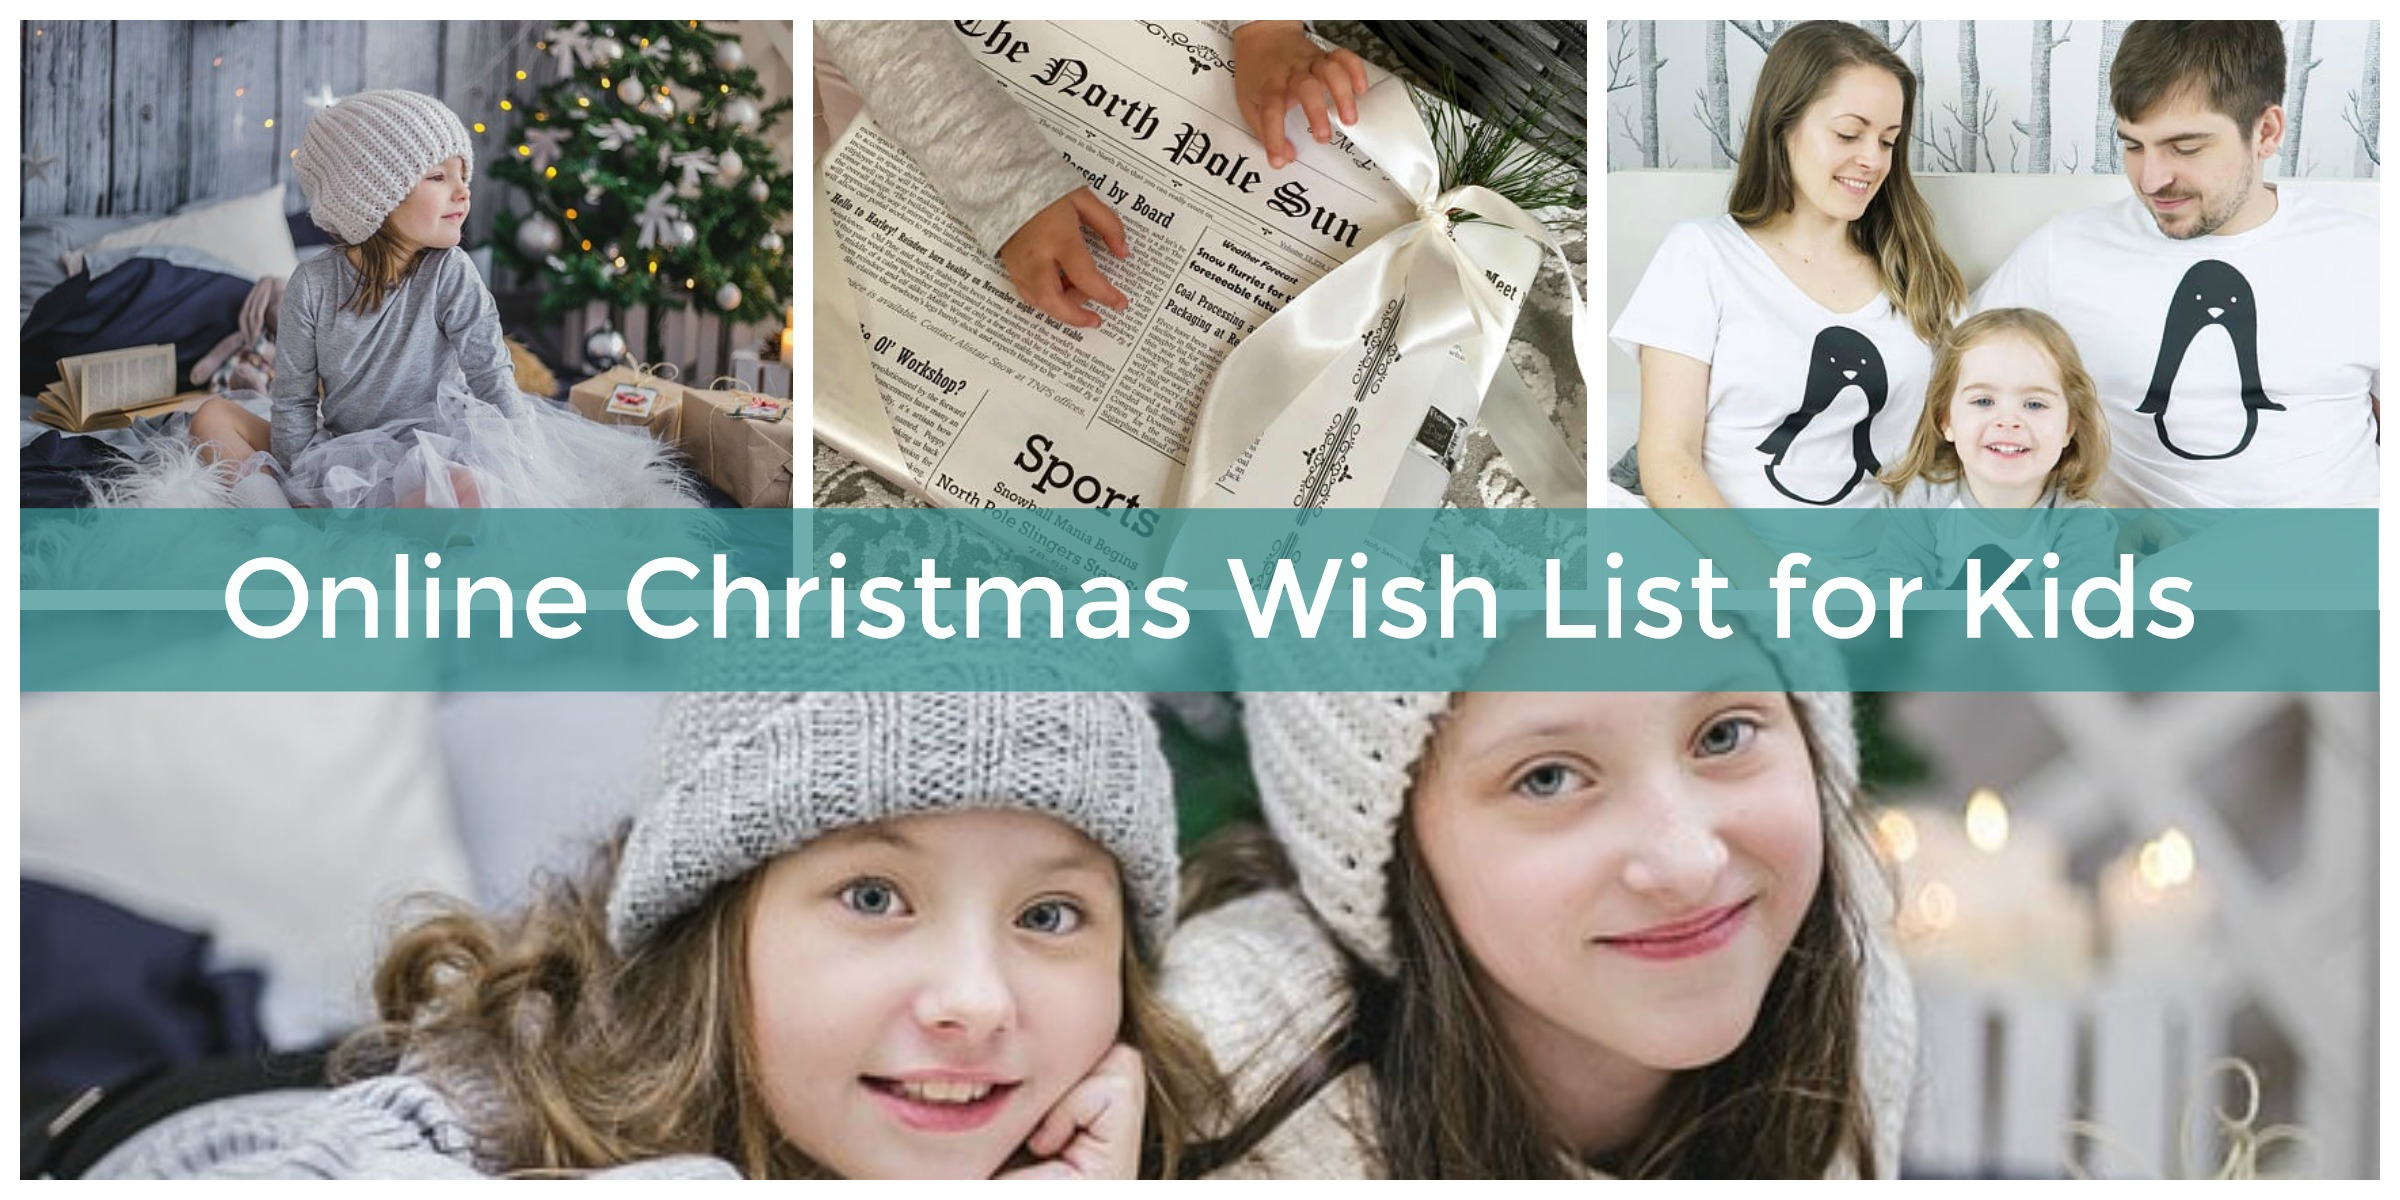 christmas wish list maker shopping for your kids is easy with an online wish list image courtesy pixabay user irinabezmen